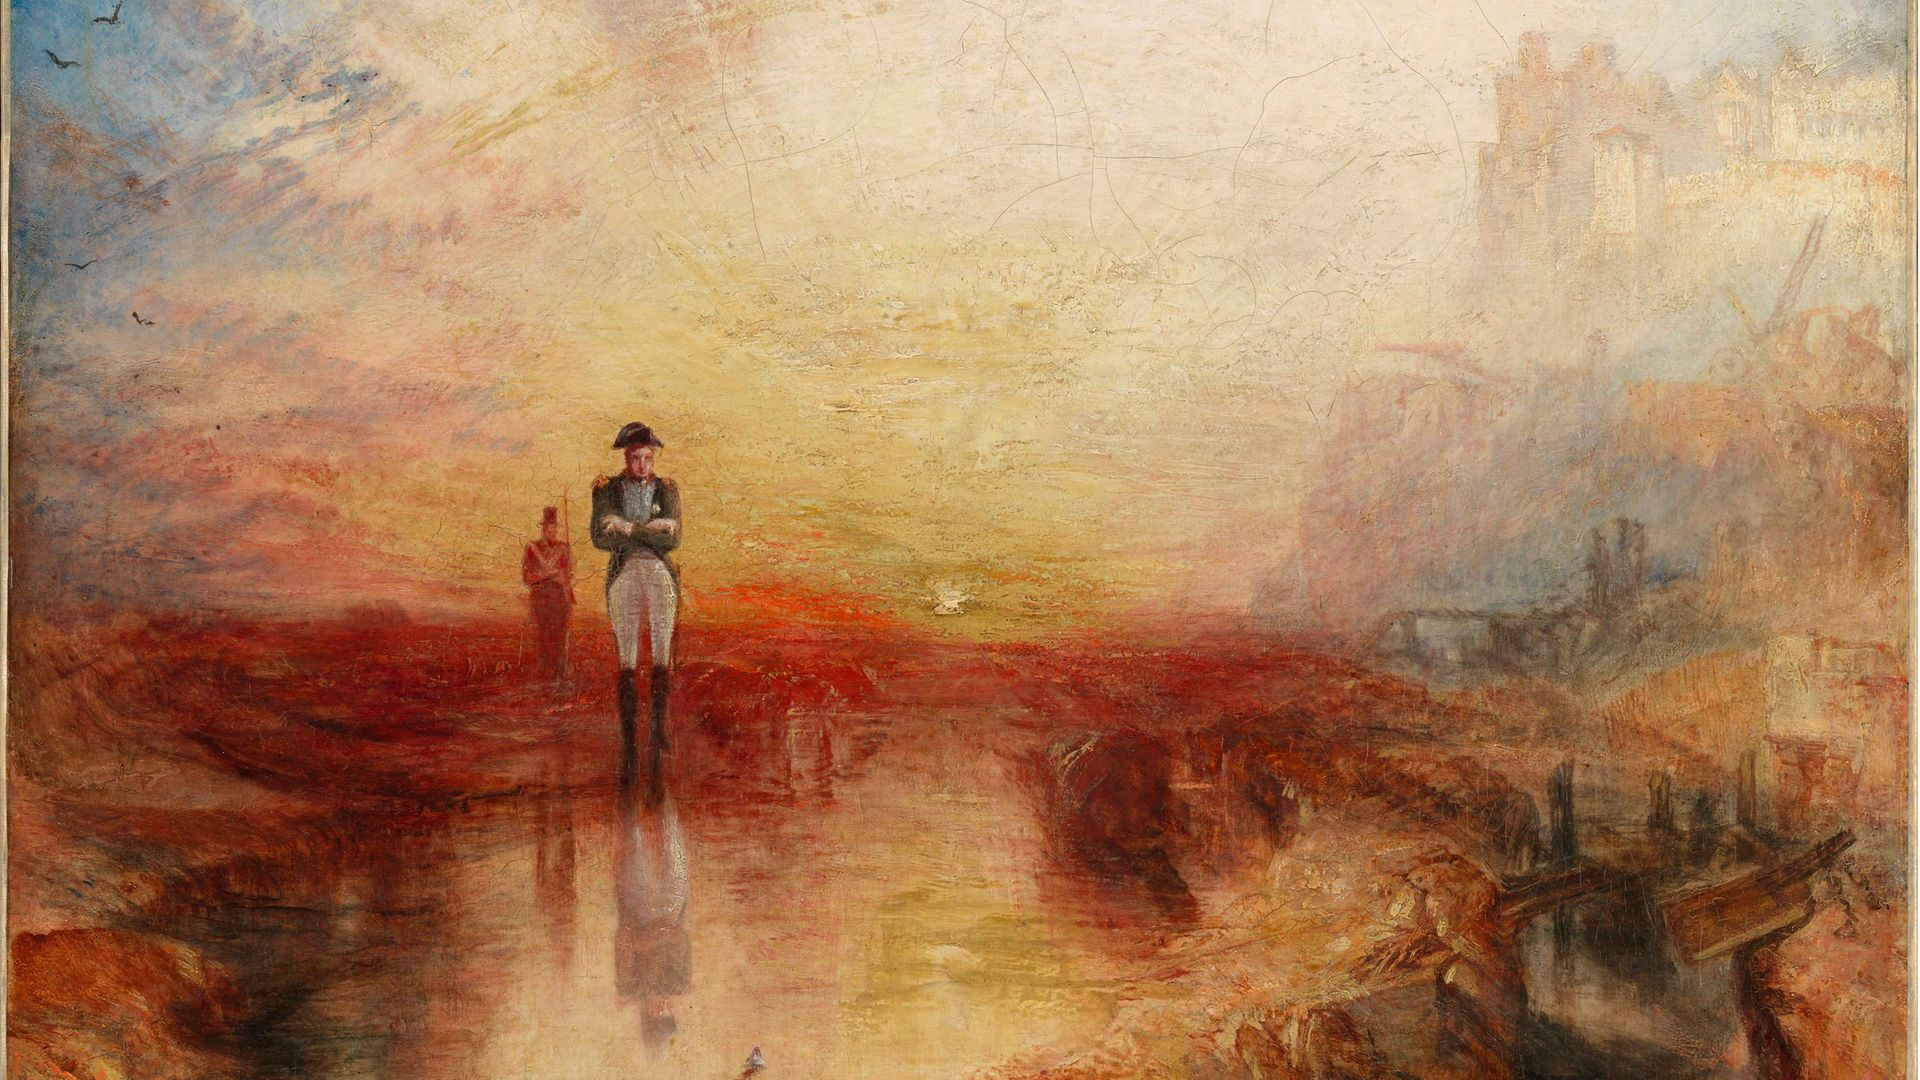 JMW Turner's War. The Exile and the Rock Limpet exhibited 1842. - Credit: Turner's Modern World